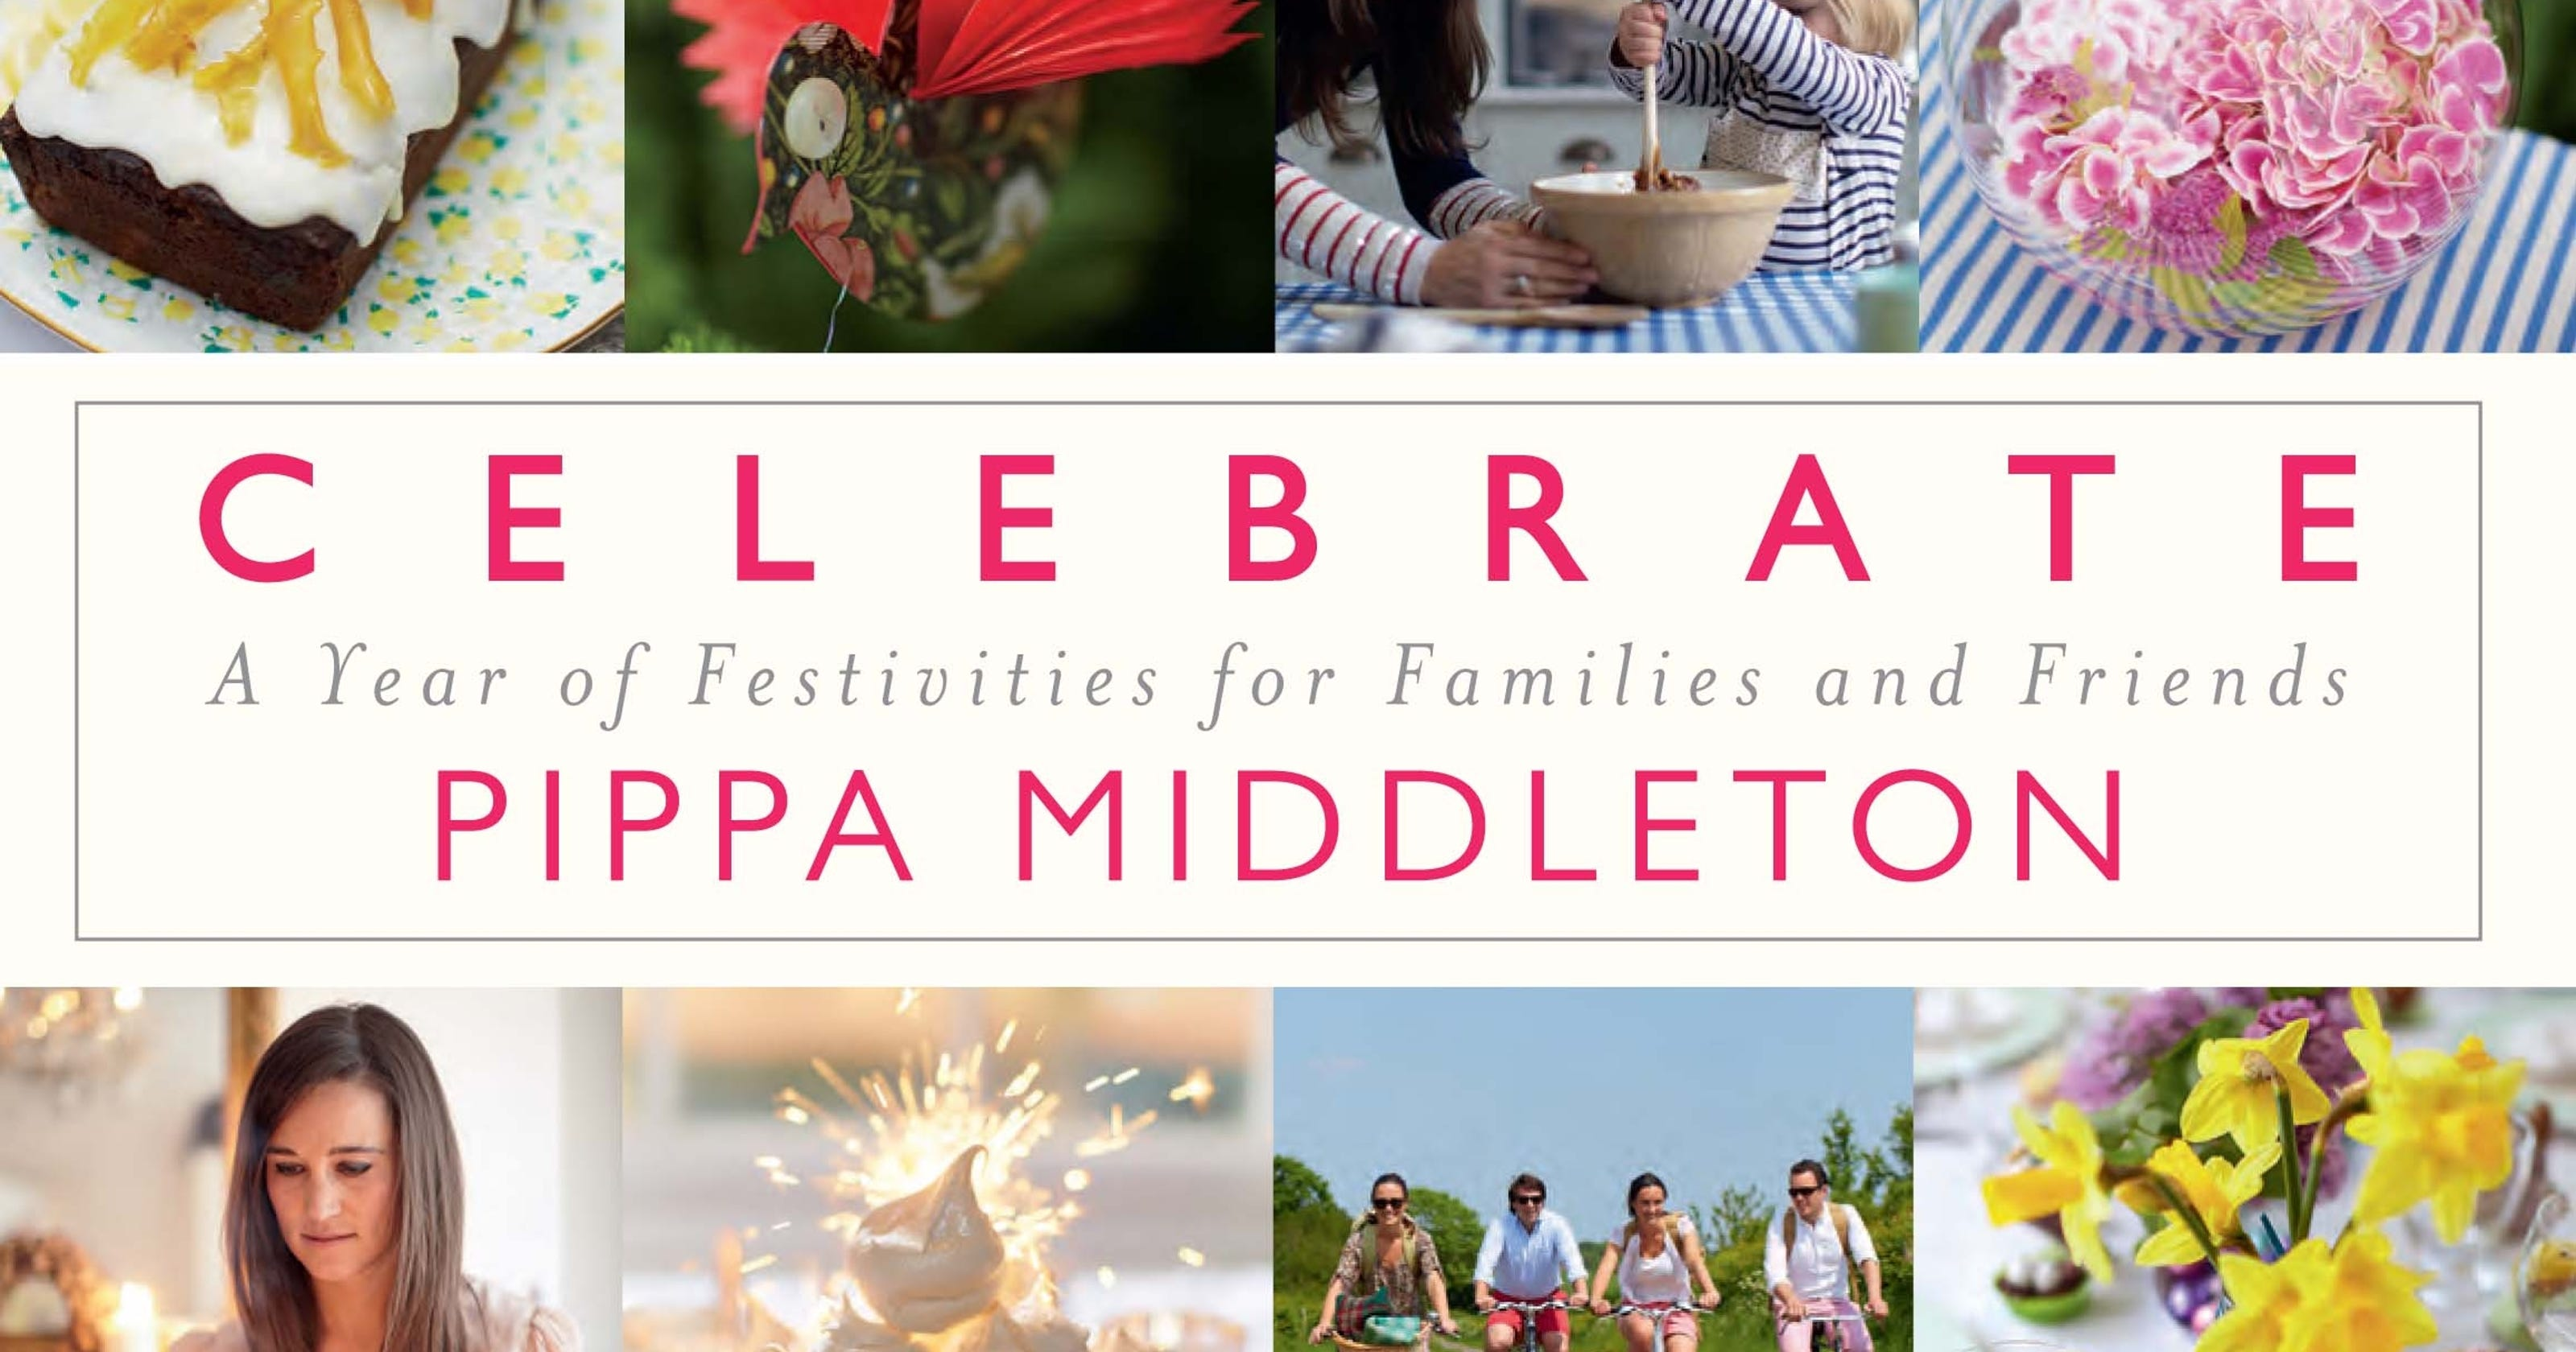 celebrate a year of festivities for families and friends pdf